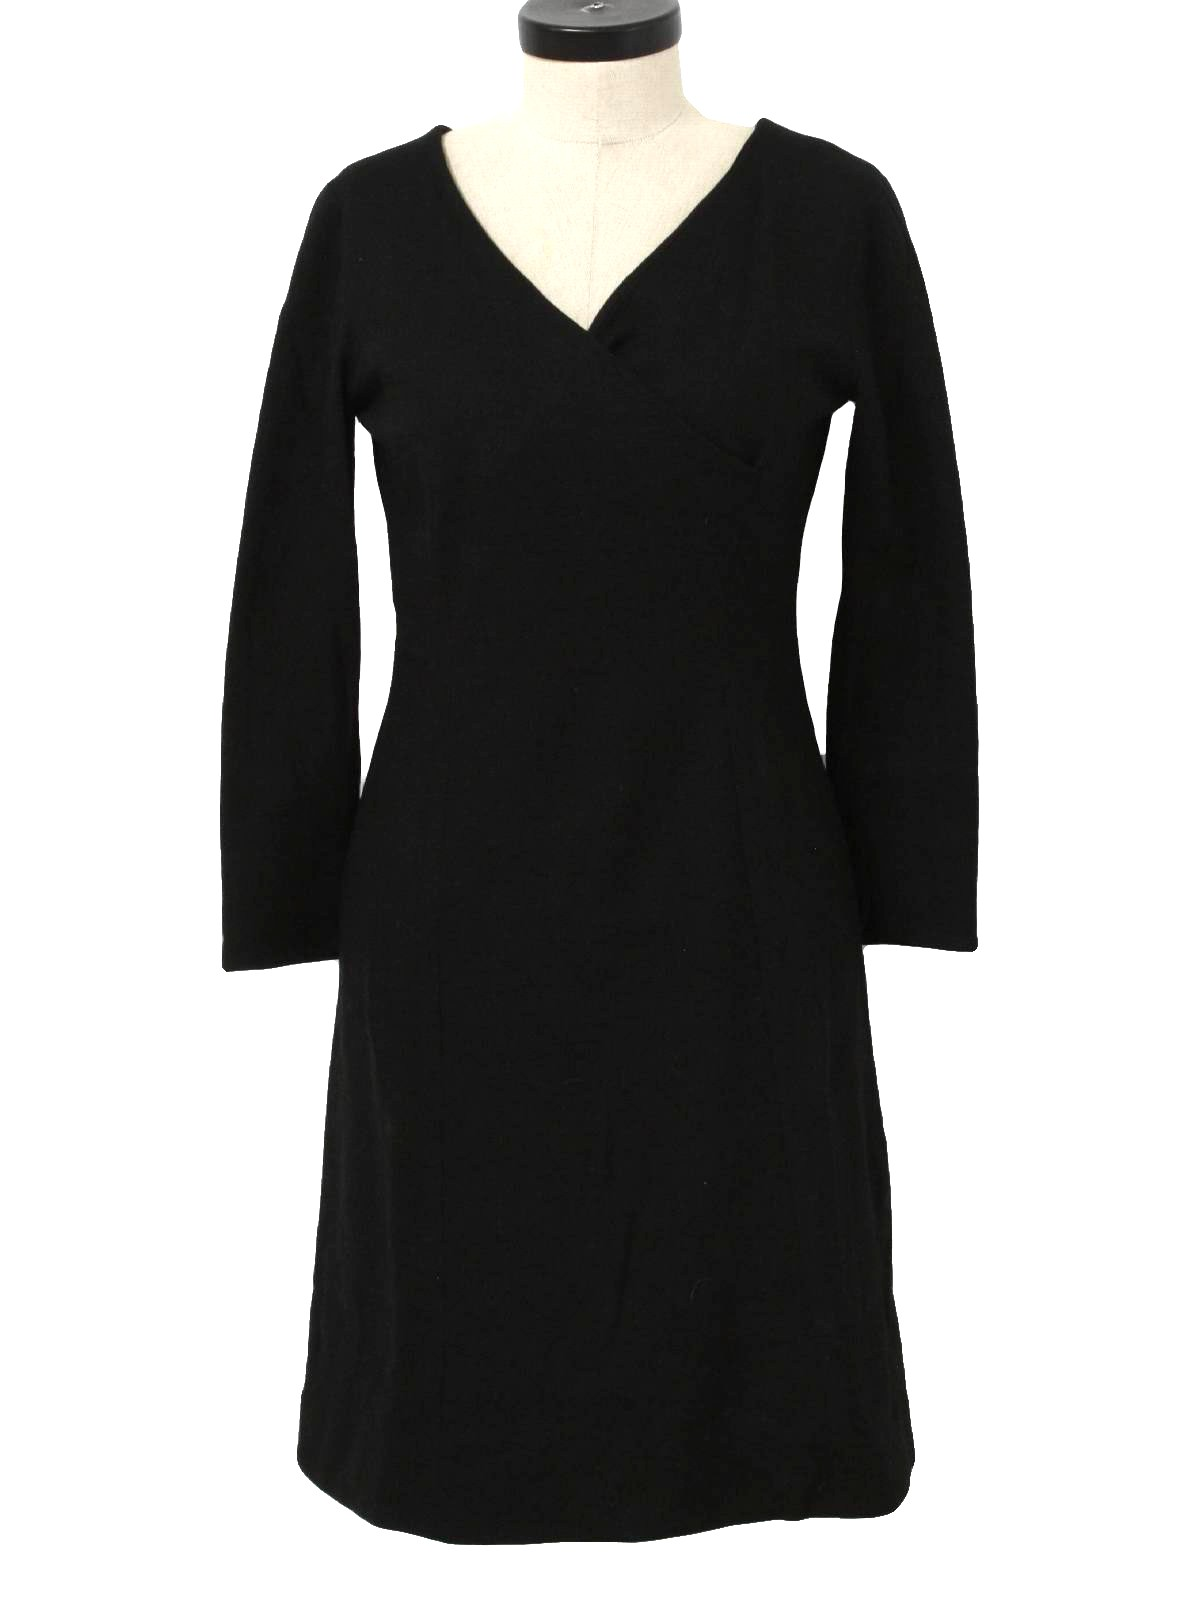 a2f26805445 1960 s Retro Cocktail Dress  Early 60s -Jack Marsee- Womens black ...